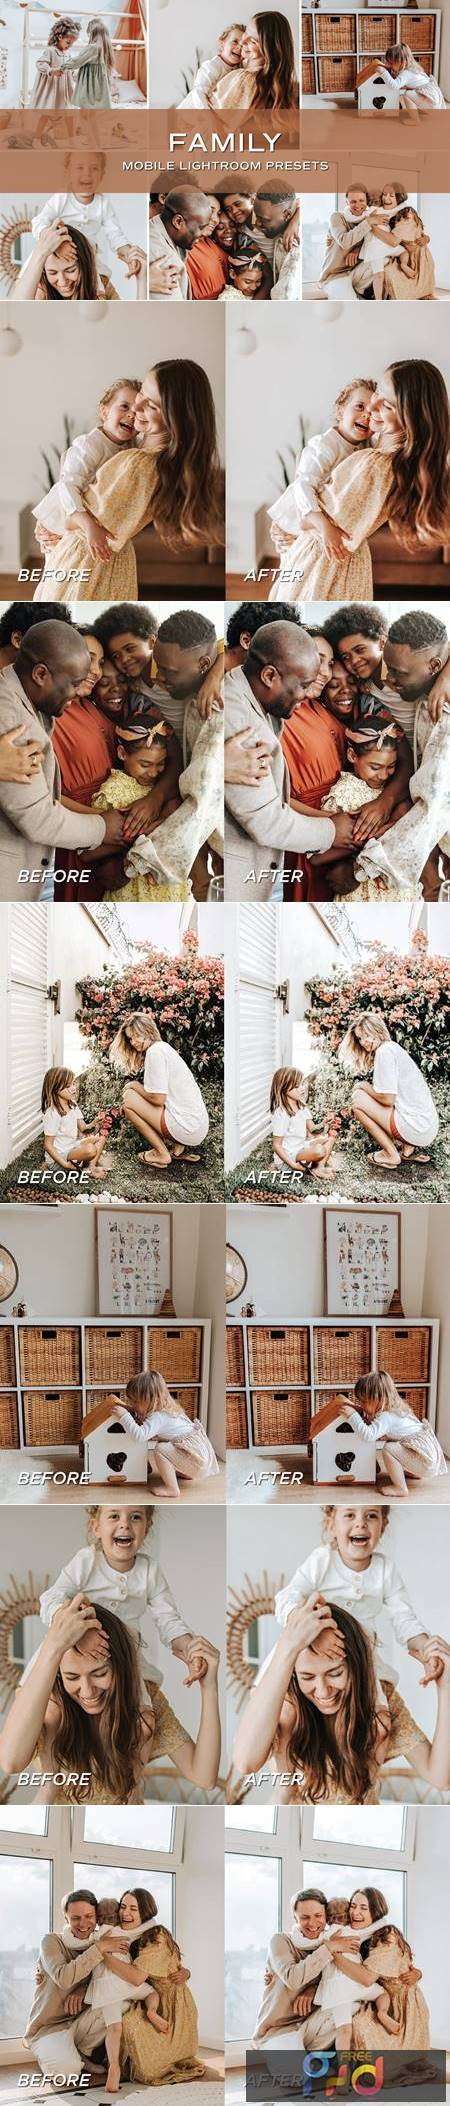 5 Family Lightroom Presets 5701423 1